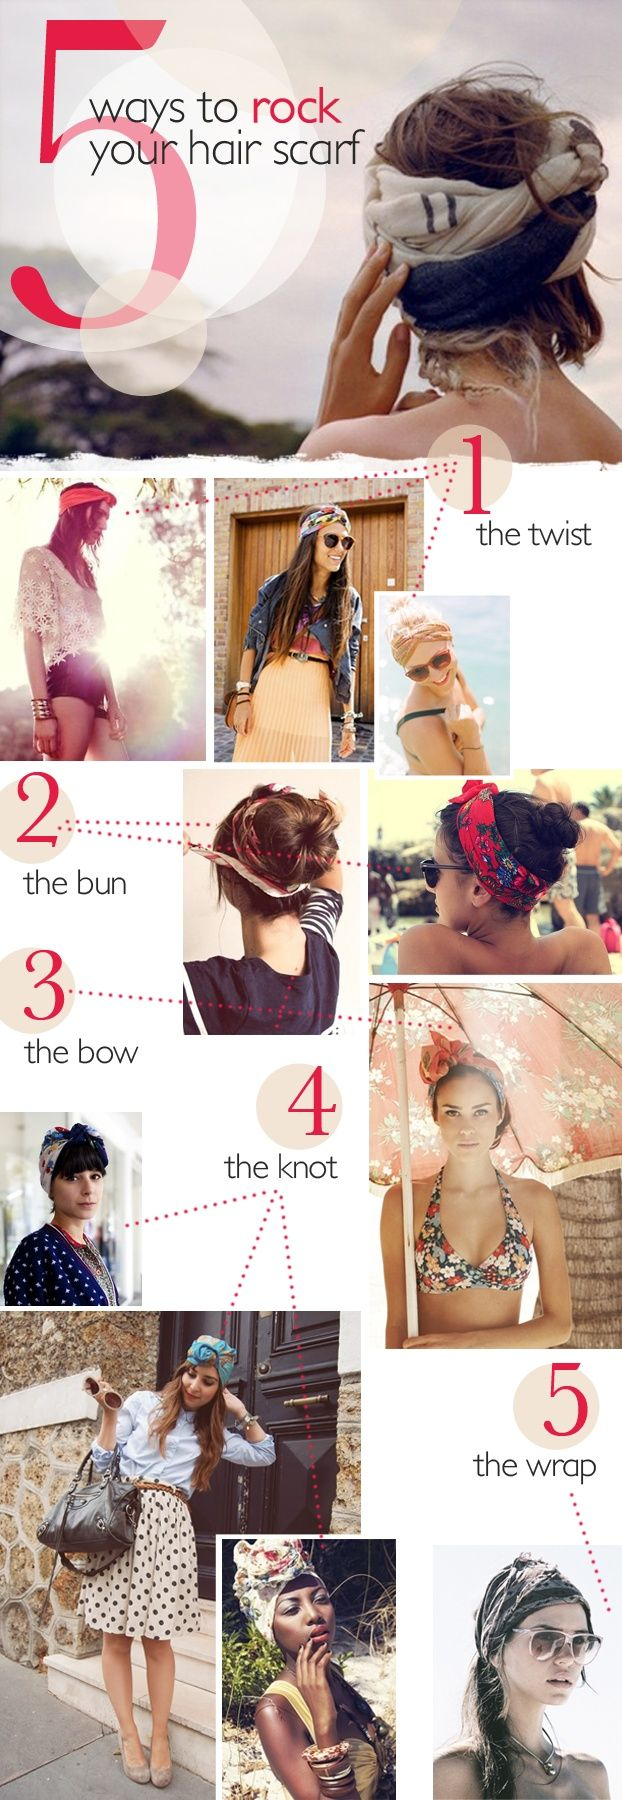 5 ways to wear a hair scarf ^^ zazumi.com